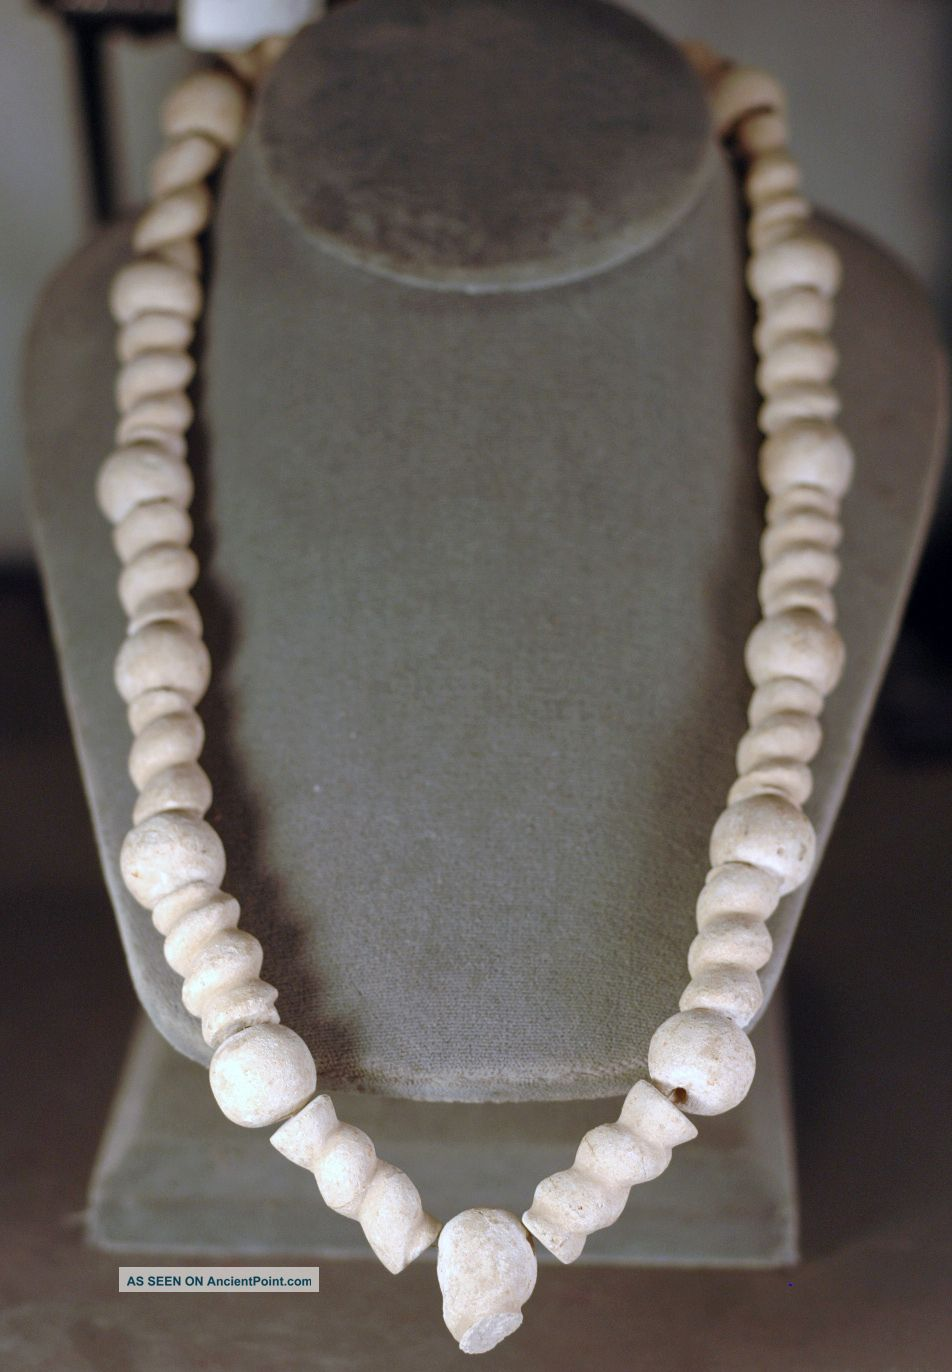 Necklace,  Levantine Bronze Age Stone Bead Over 3000 Years Old Near Eastern photo